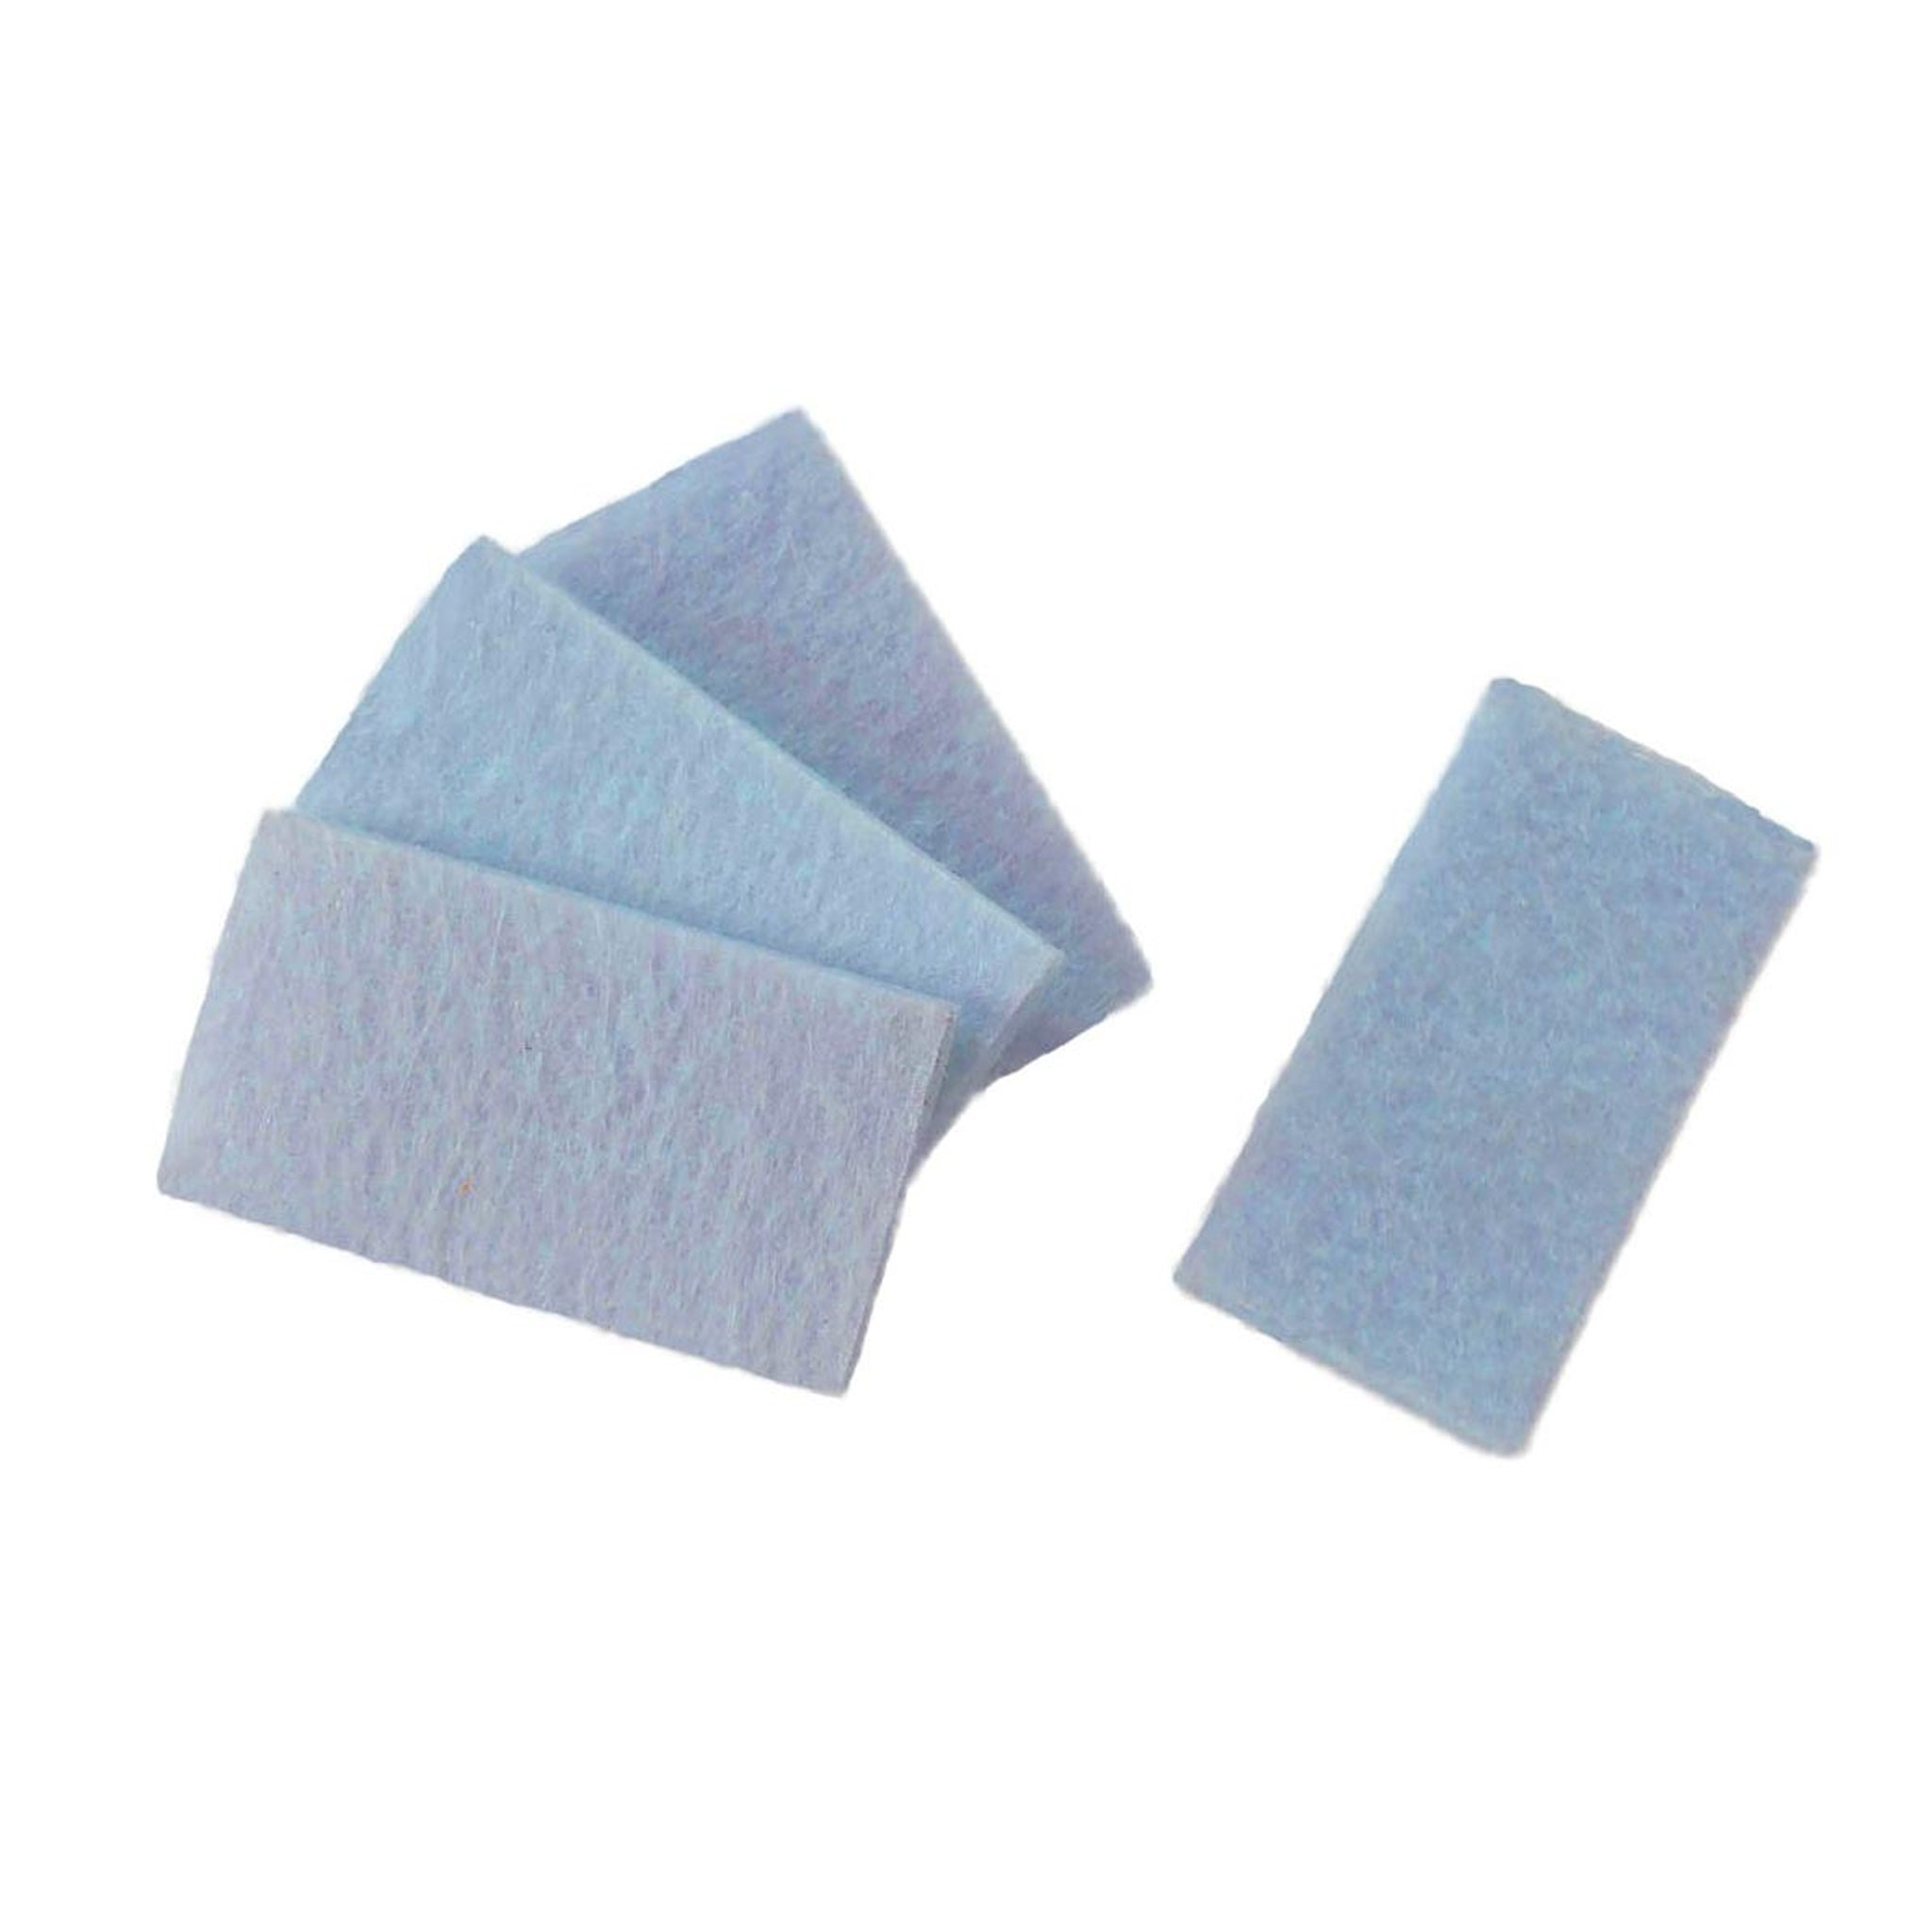 Aroma Pads (Set of 4) HU37 for Humio Humidifer HU-1020A - Tribest